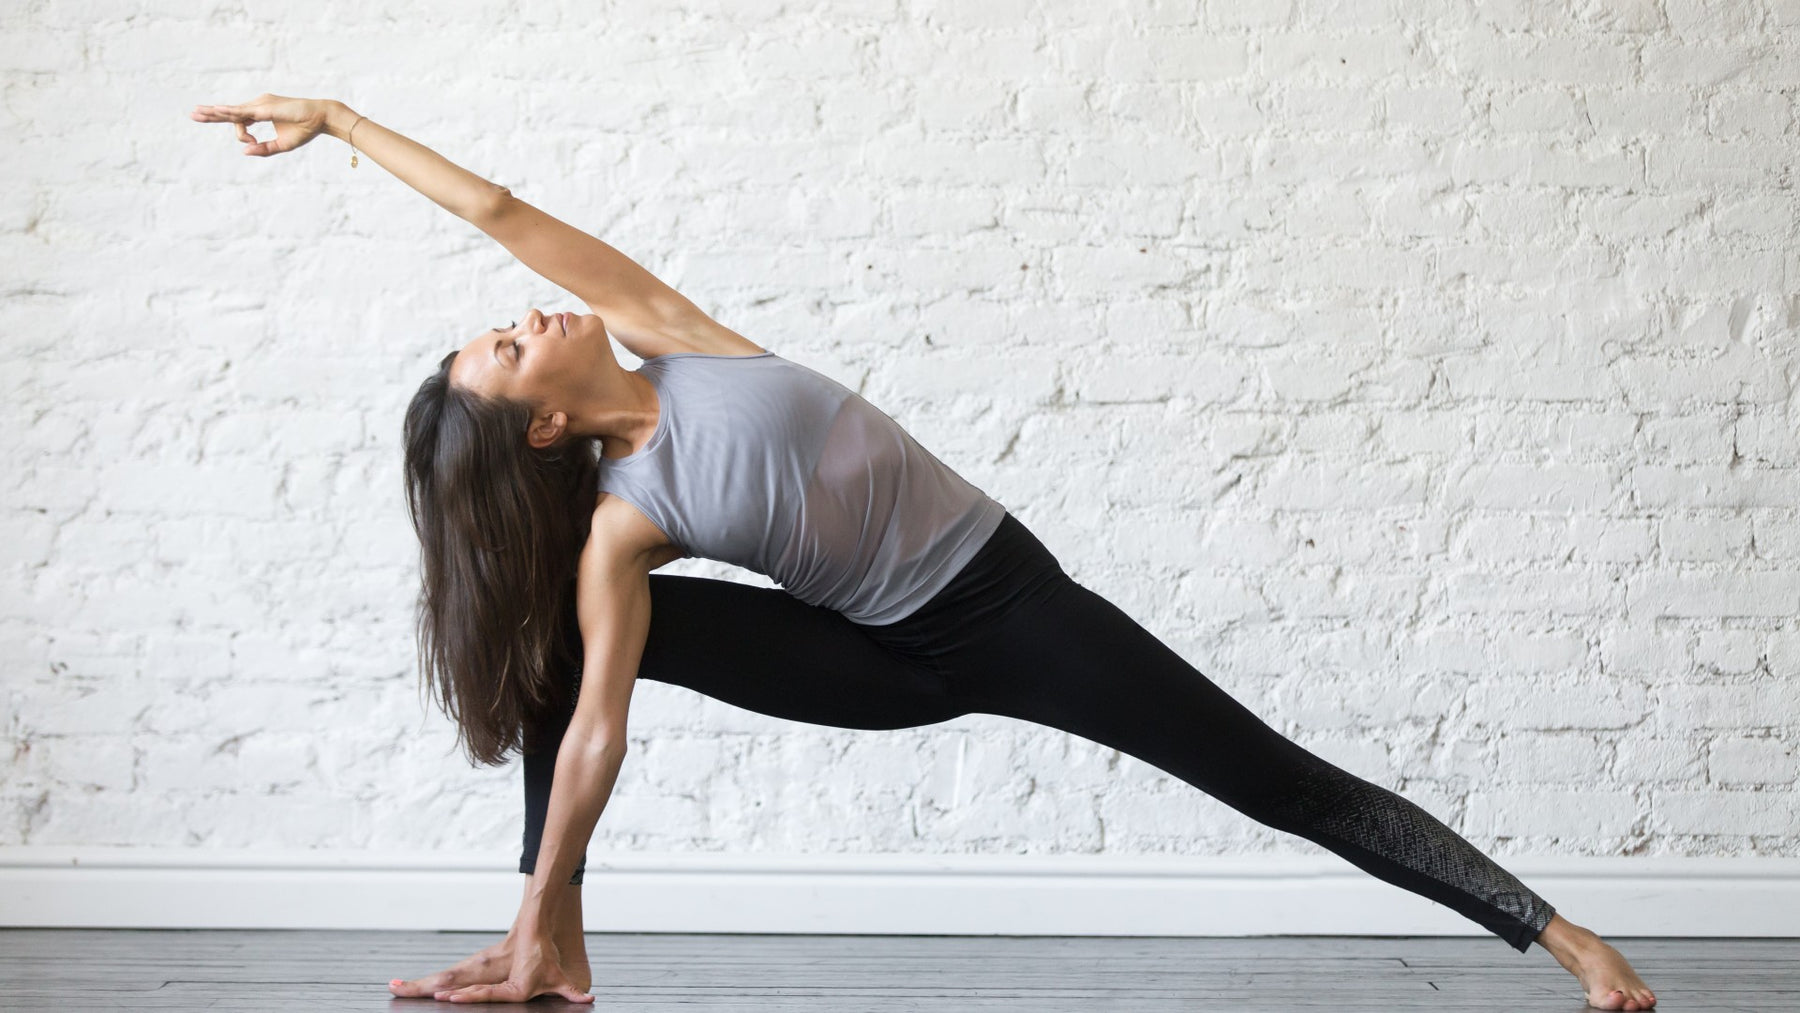 8 Ways to Get a Great Butt With Yoga